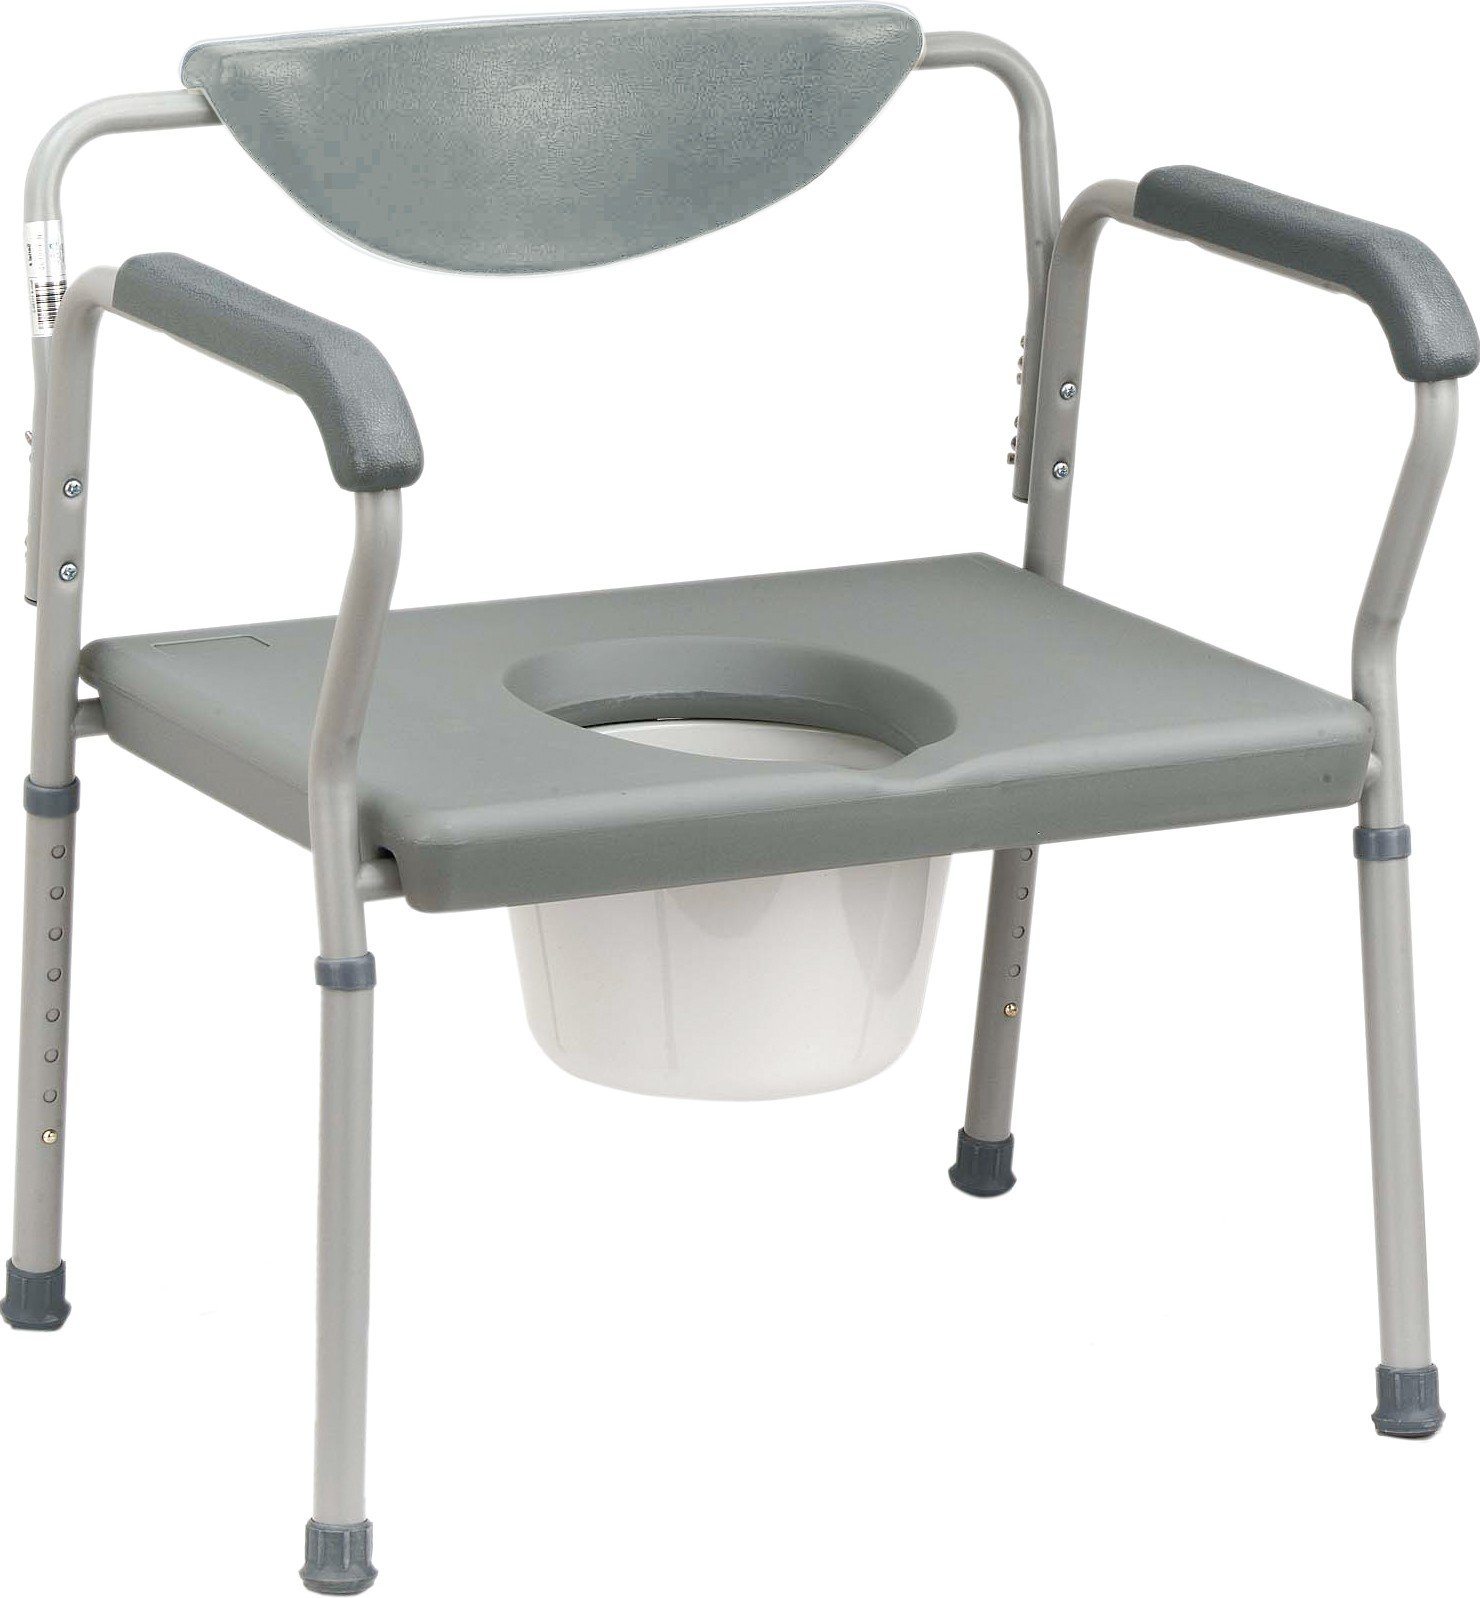 Commode - Deluxe extra wide, heavy duty steel adjustable blow molded commode with removable back rest, 3 in 1 capability. Overall width 26'', back height adjusts from 29 1/2'' - 36 1/2'', seat height adjust from 16 1/2'' - 23 1/2'', seat width 23'', 24'' between